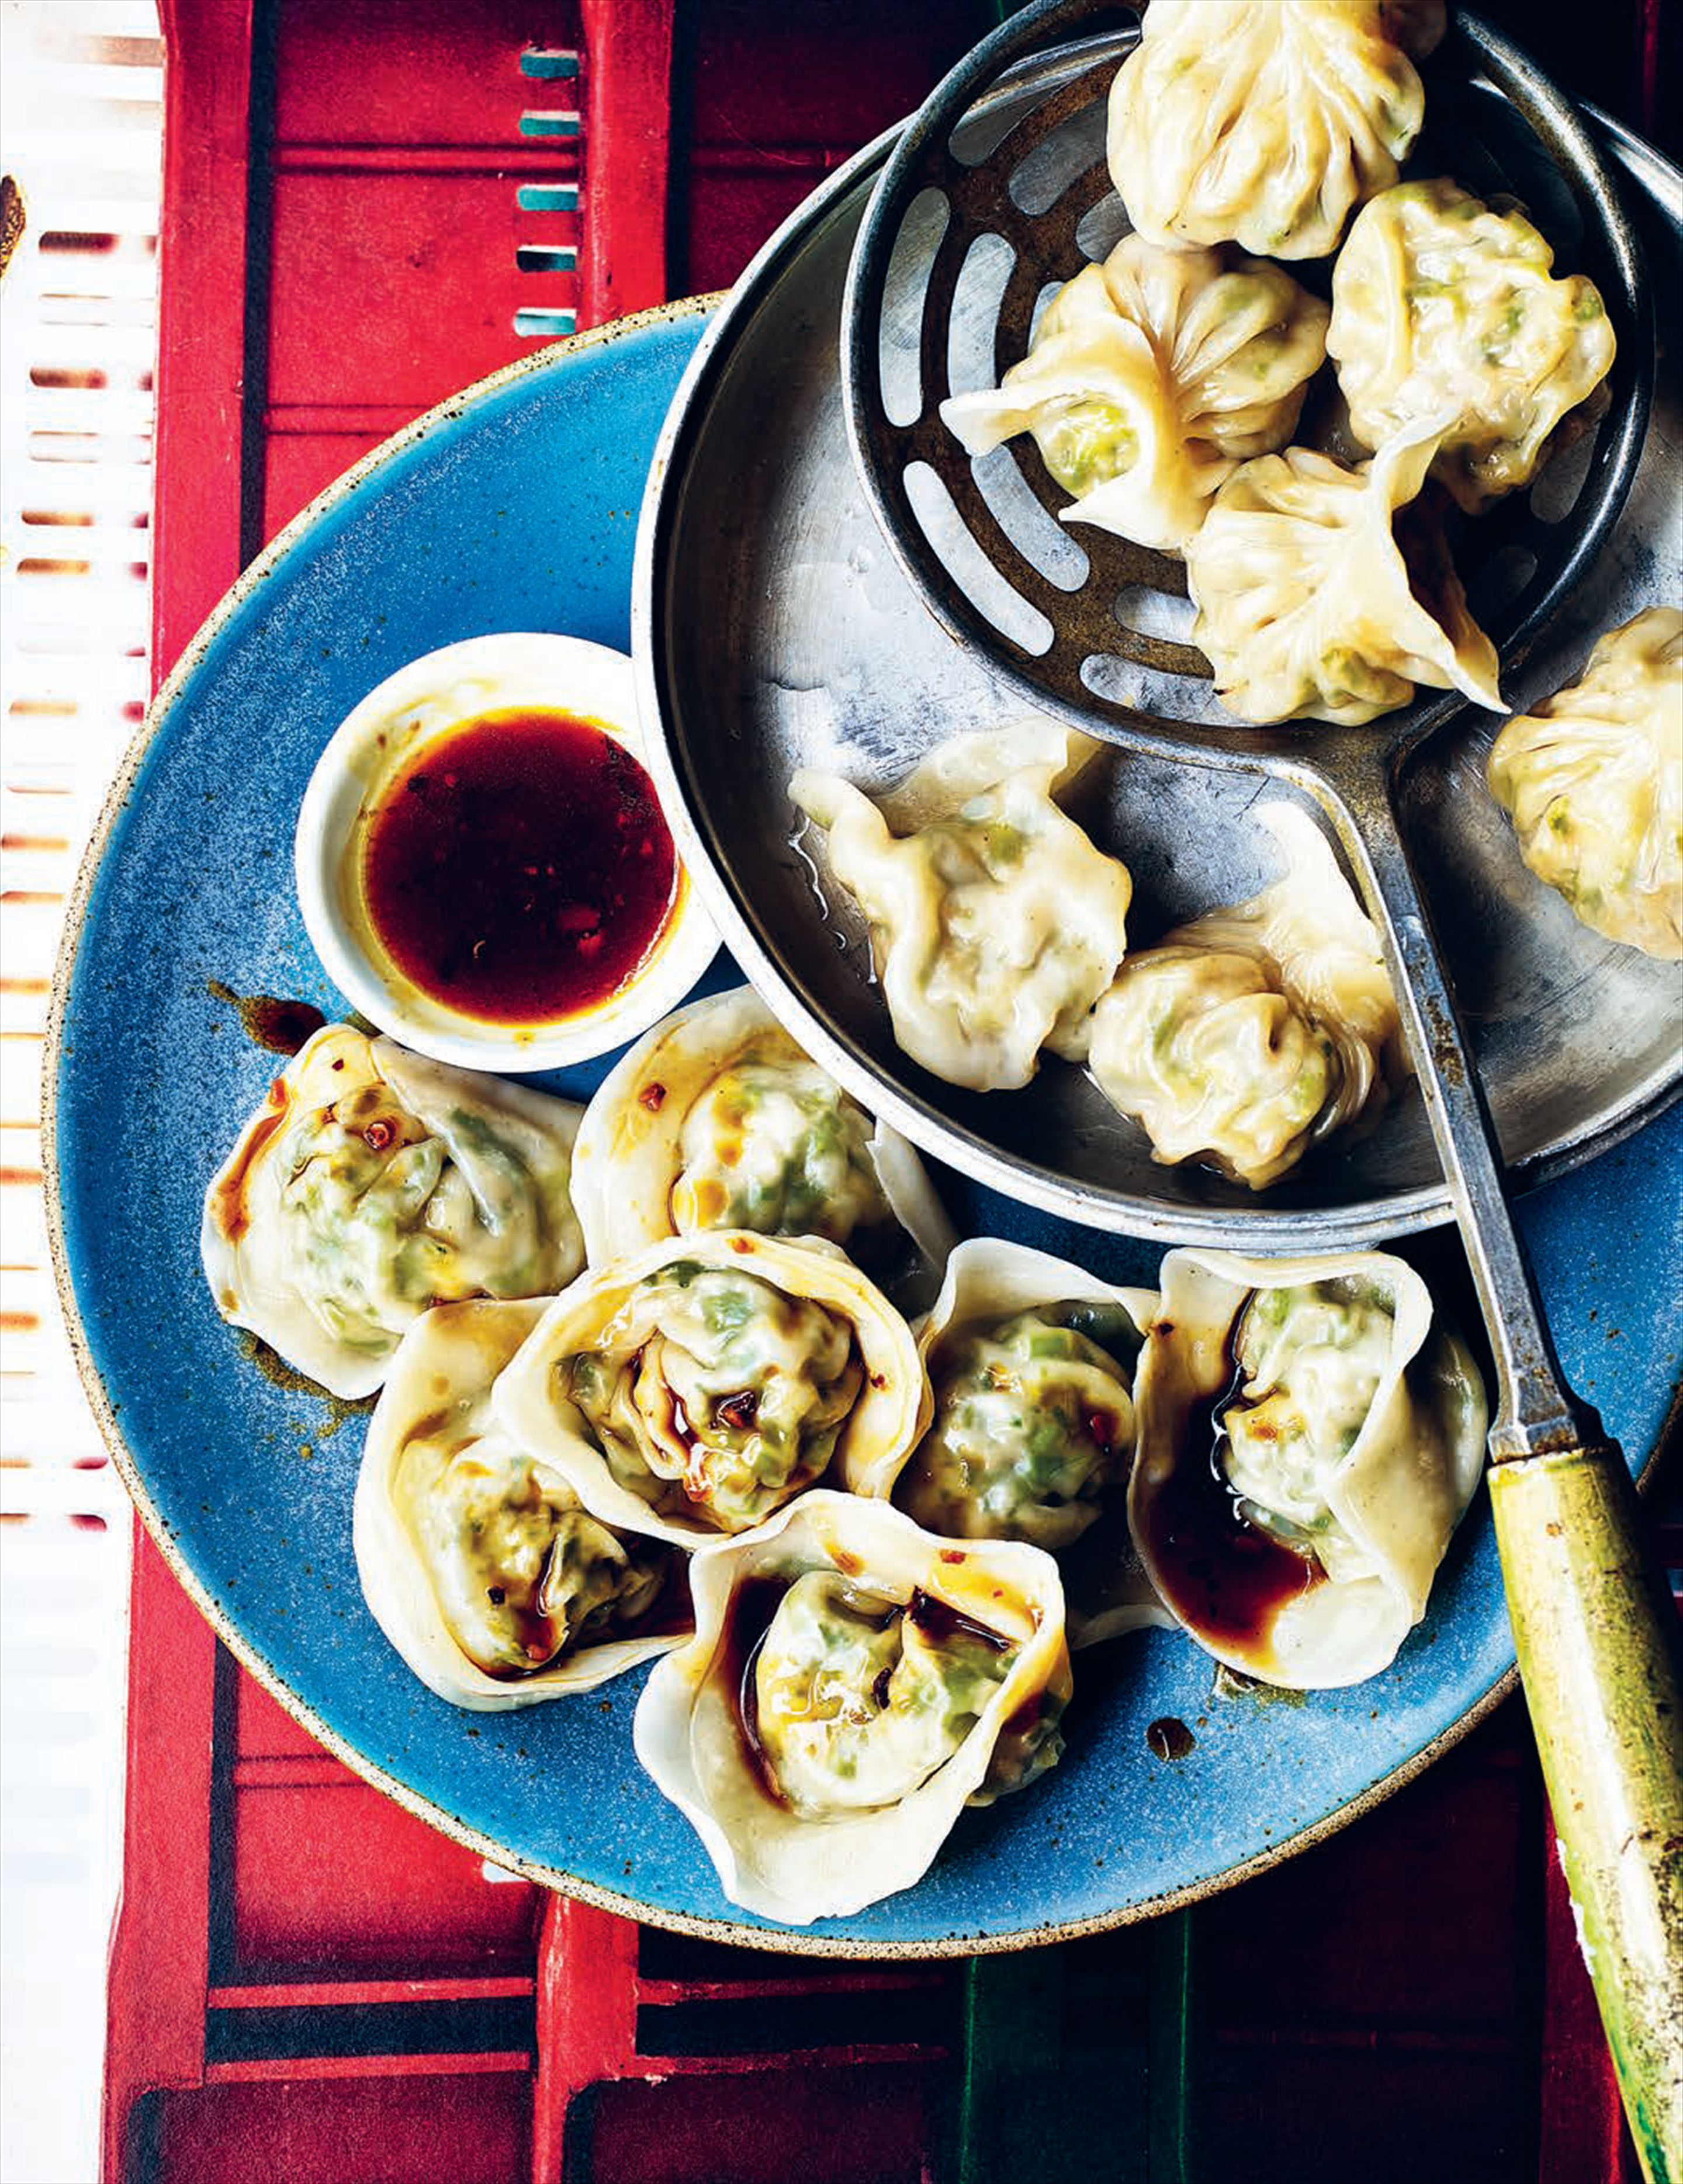 Pak choi & kale dumpling: the fat cat fold